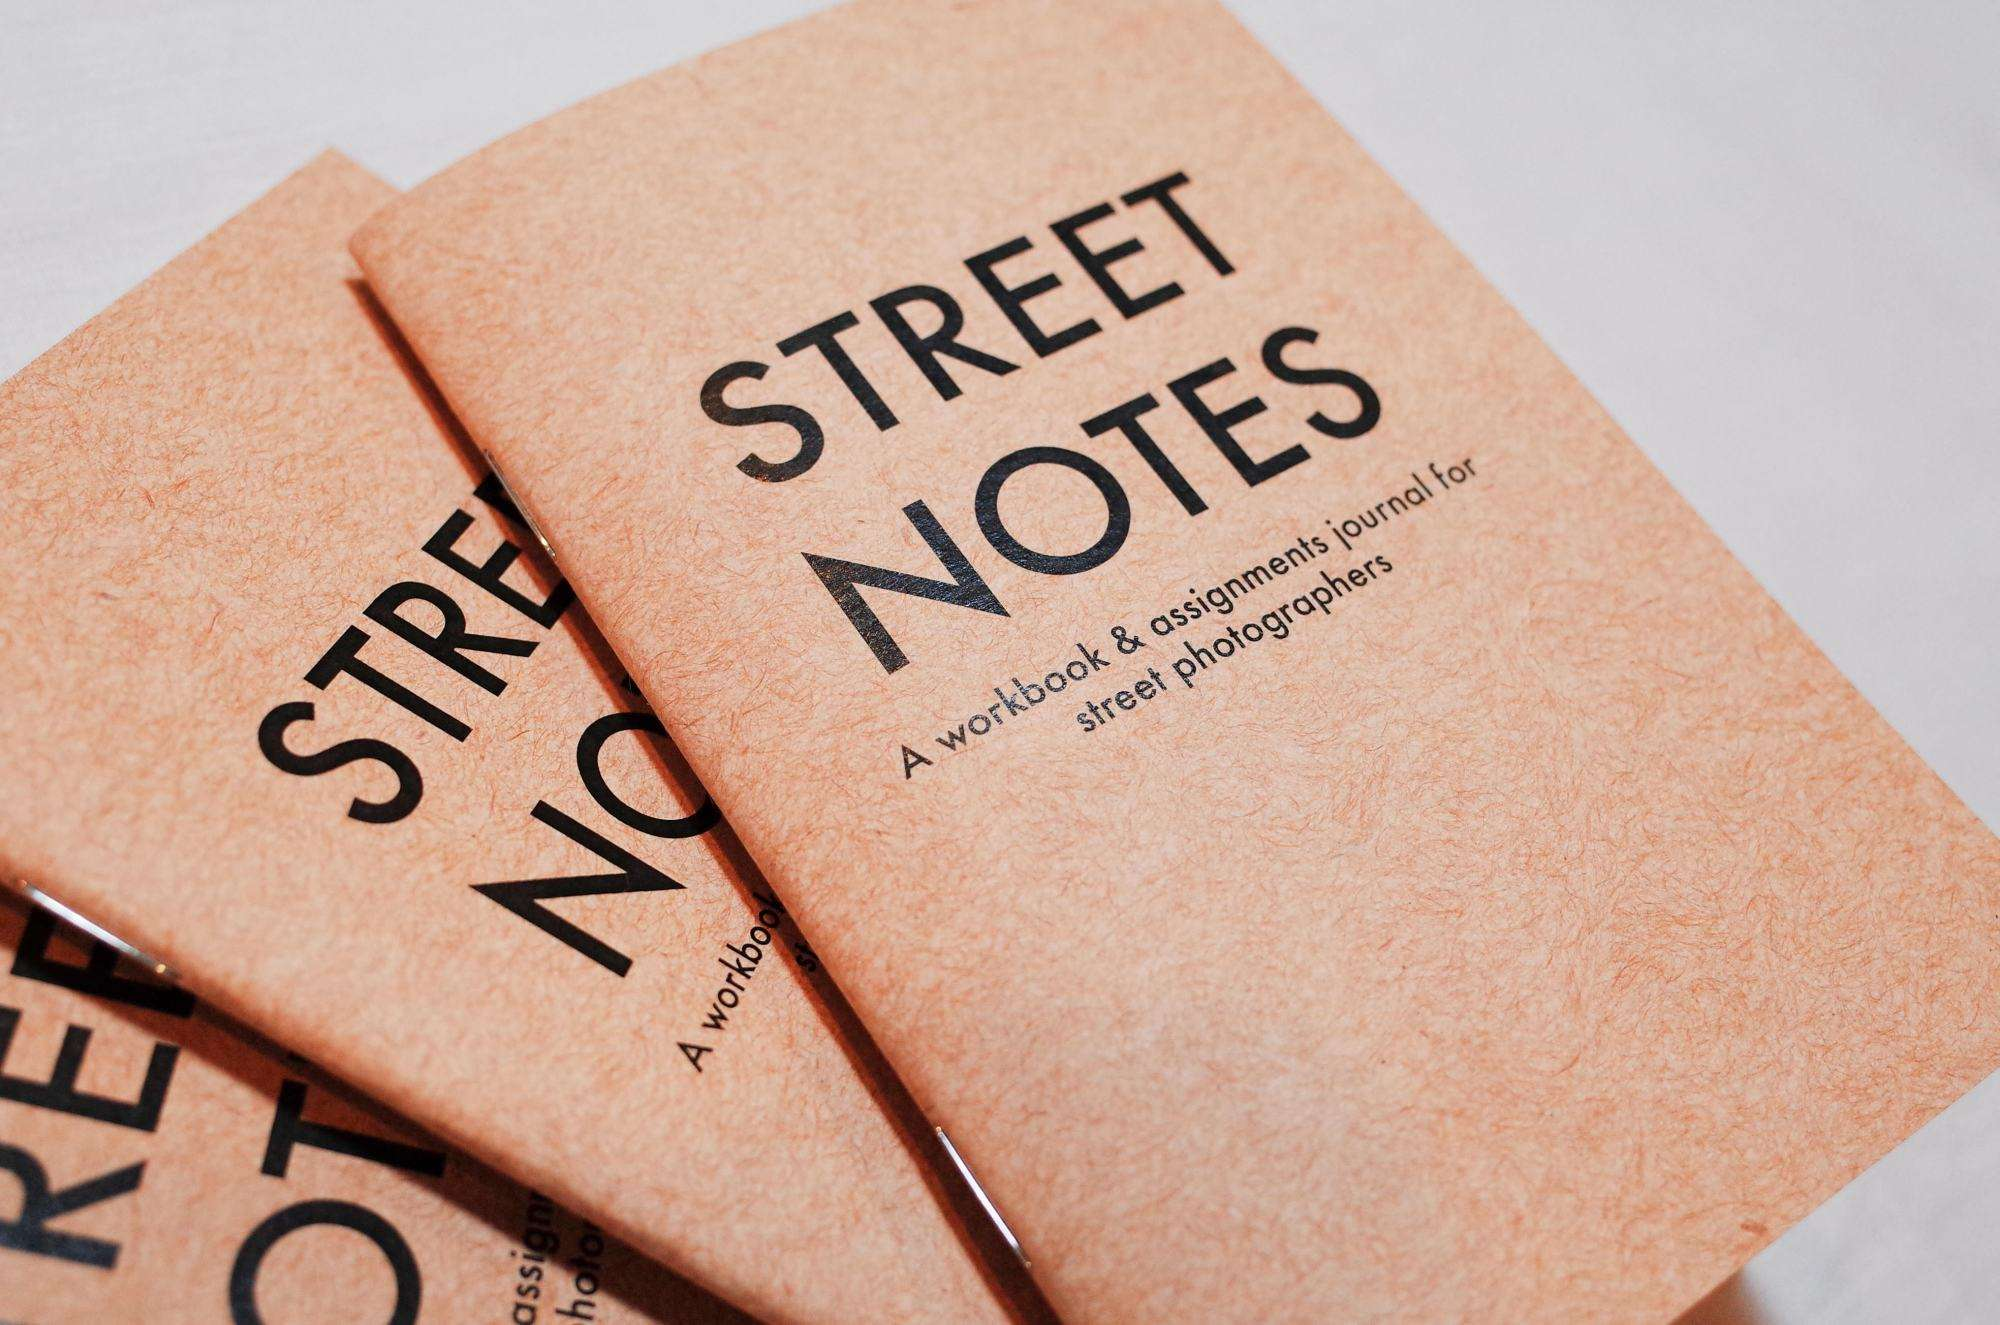 street-notes-a-workbook-and-assignments-journal-for-street-photographers-eric-kim